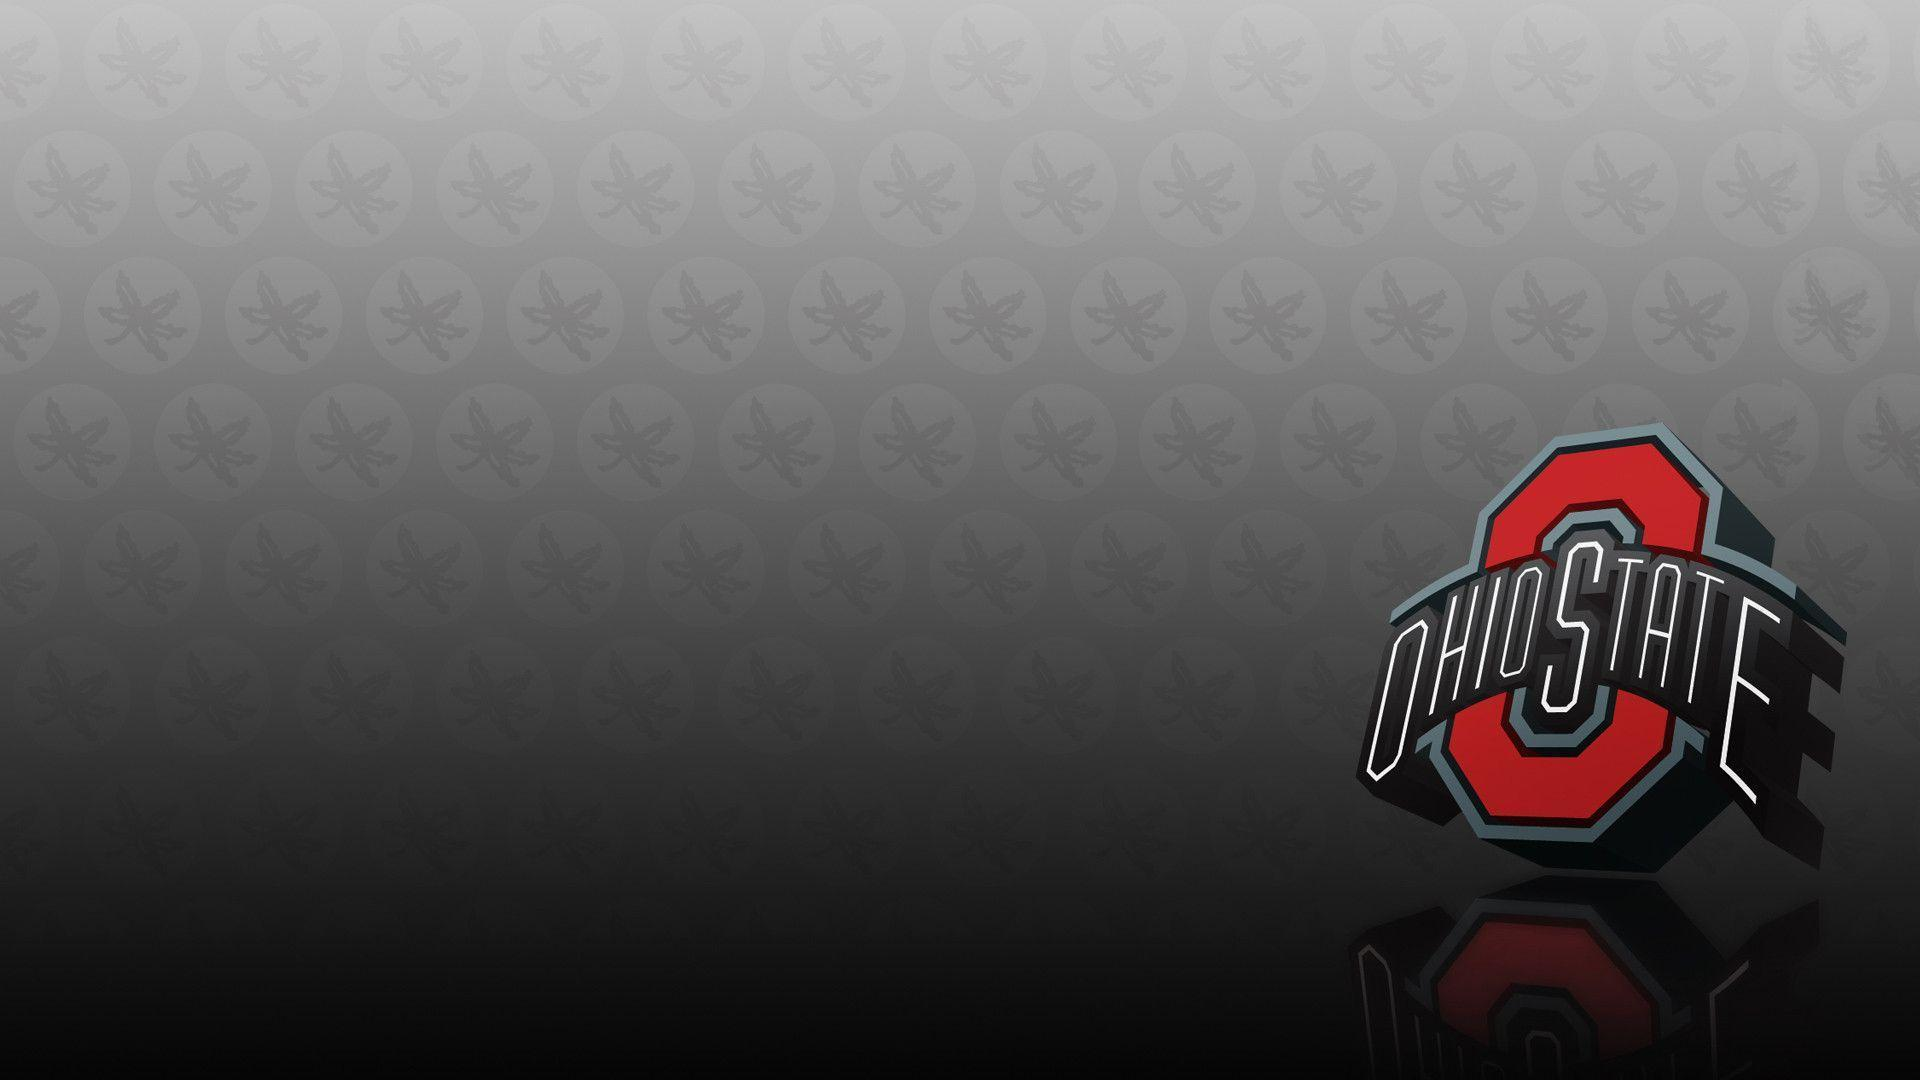 Ohio State Buckeyes Backgrounds 1920x1080